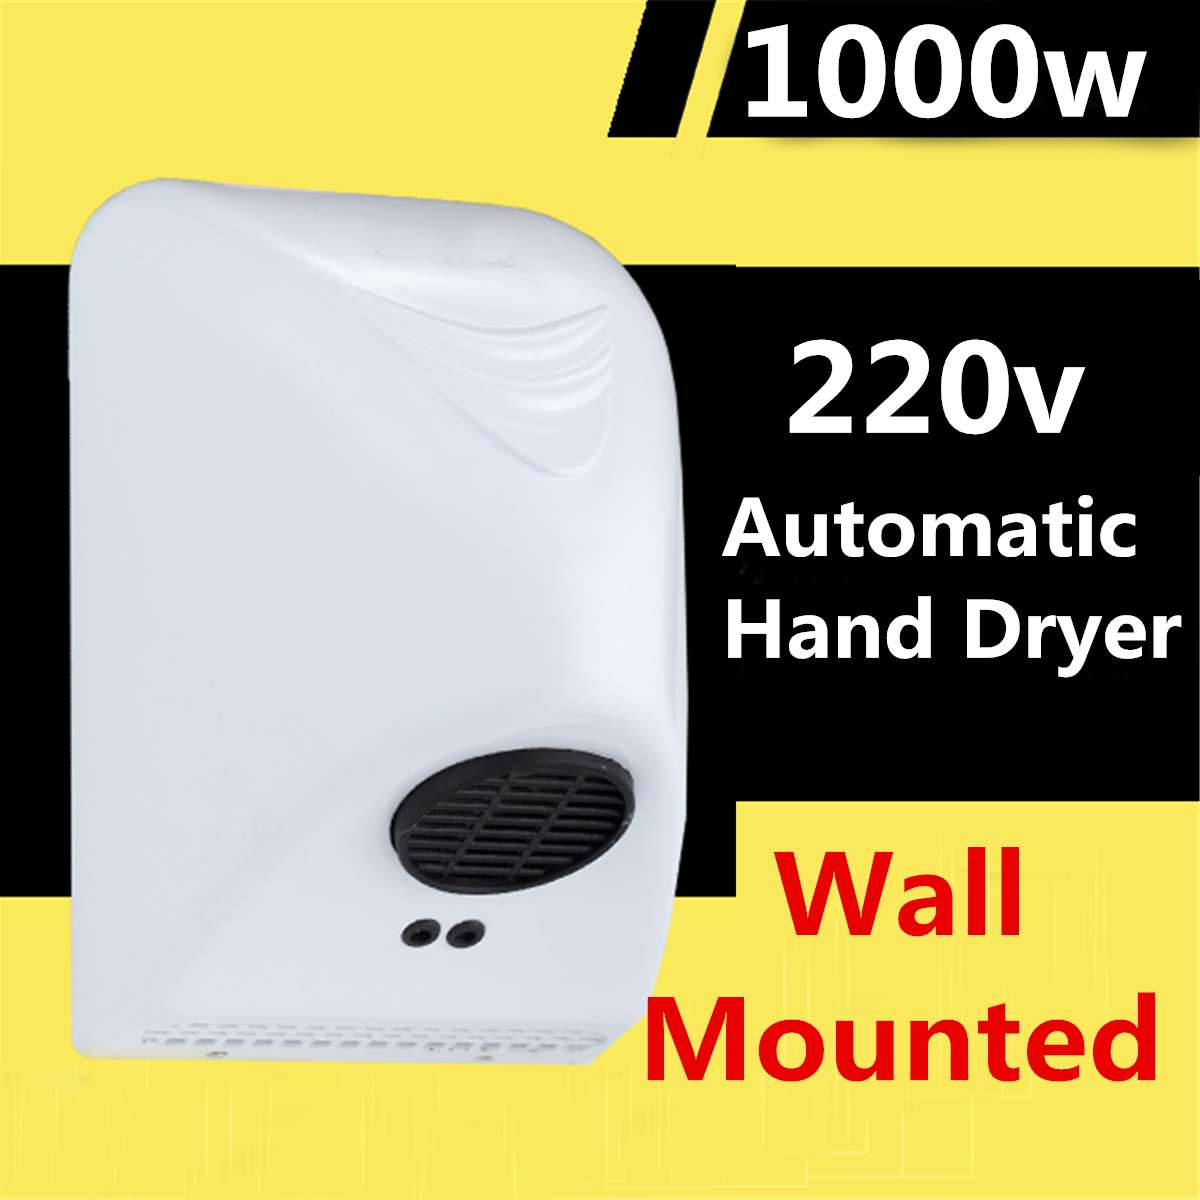 220v 1000W Powerful Wall Mounted Automatic Hand Dryer Bathroom Commercial White Hands Drying Device Bathroom Winding Machine220v 1000W Powerful Wall Mounted Automatic Hand Dryer Bathroom Commercial White Hands Drying Device Bathroom Winding Machine